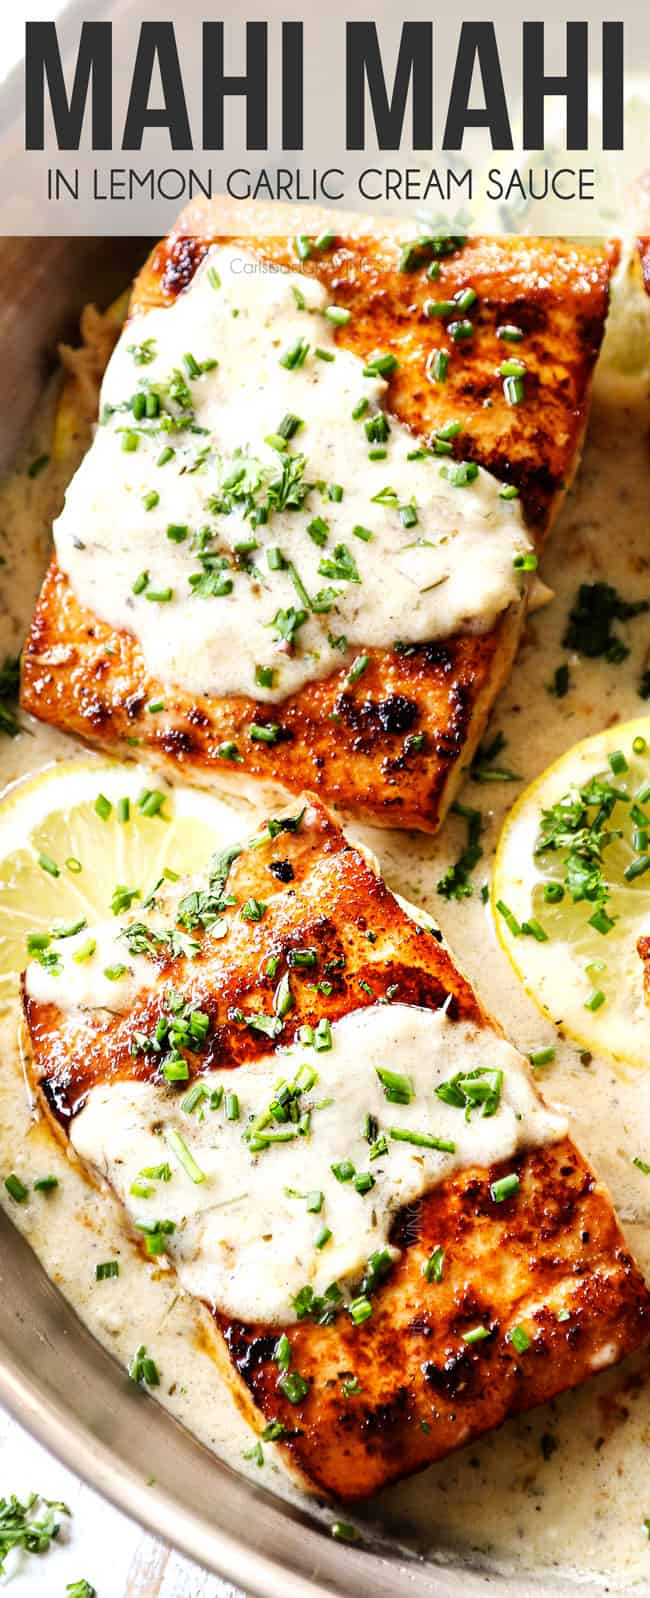 up close view of mahi mahi  on a stainless steel skillet with lemon cream sauce